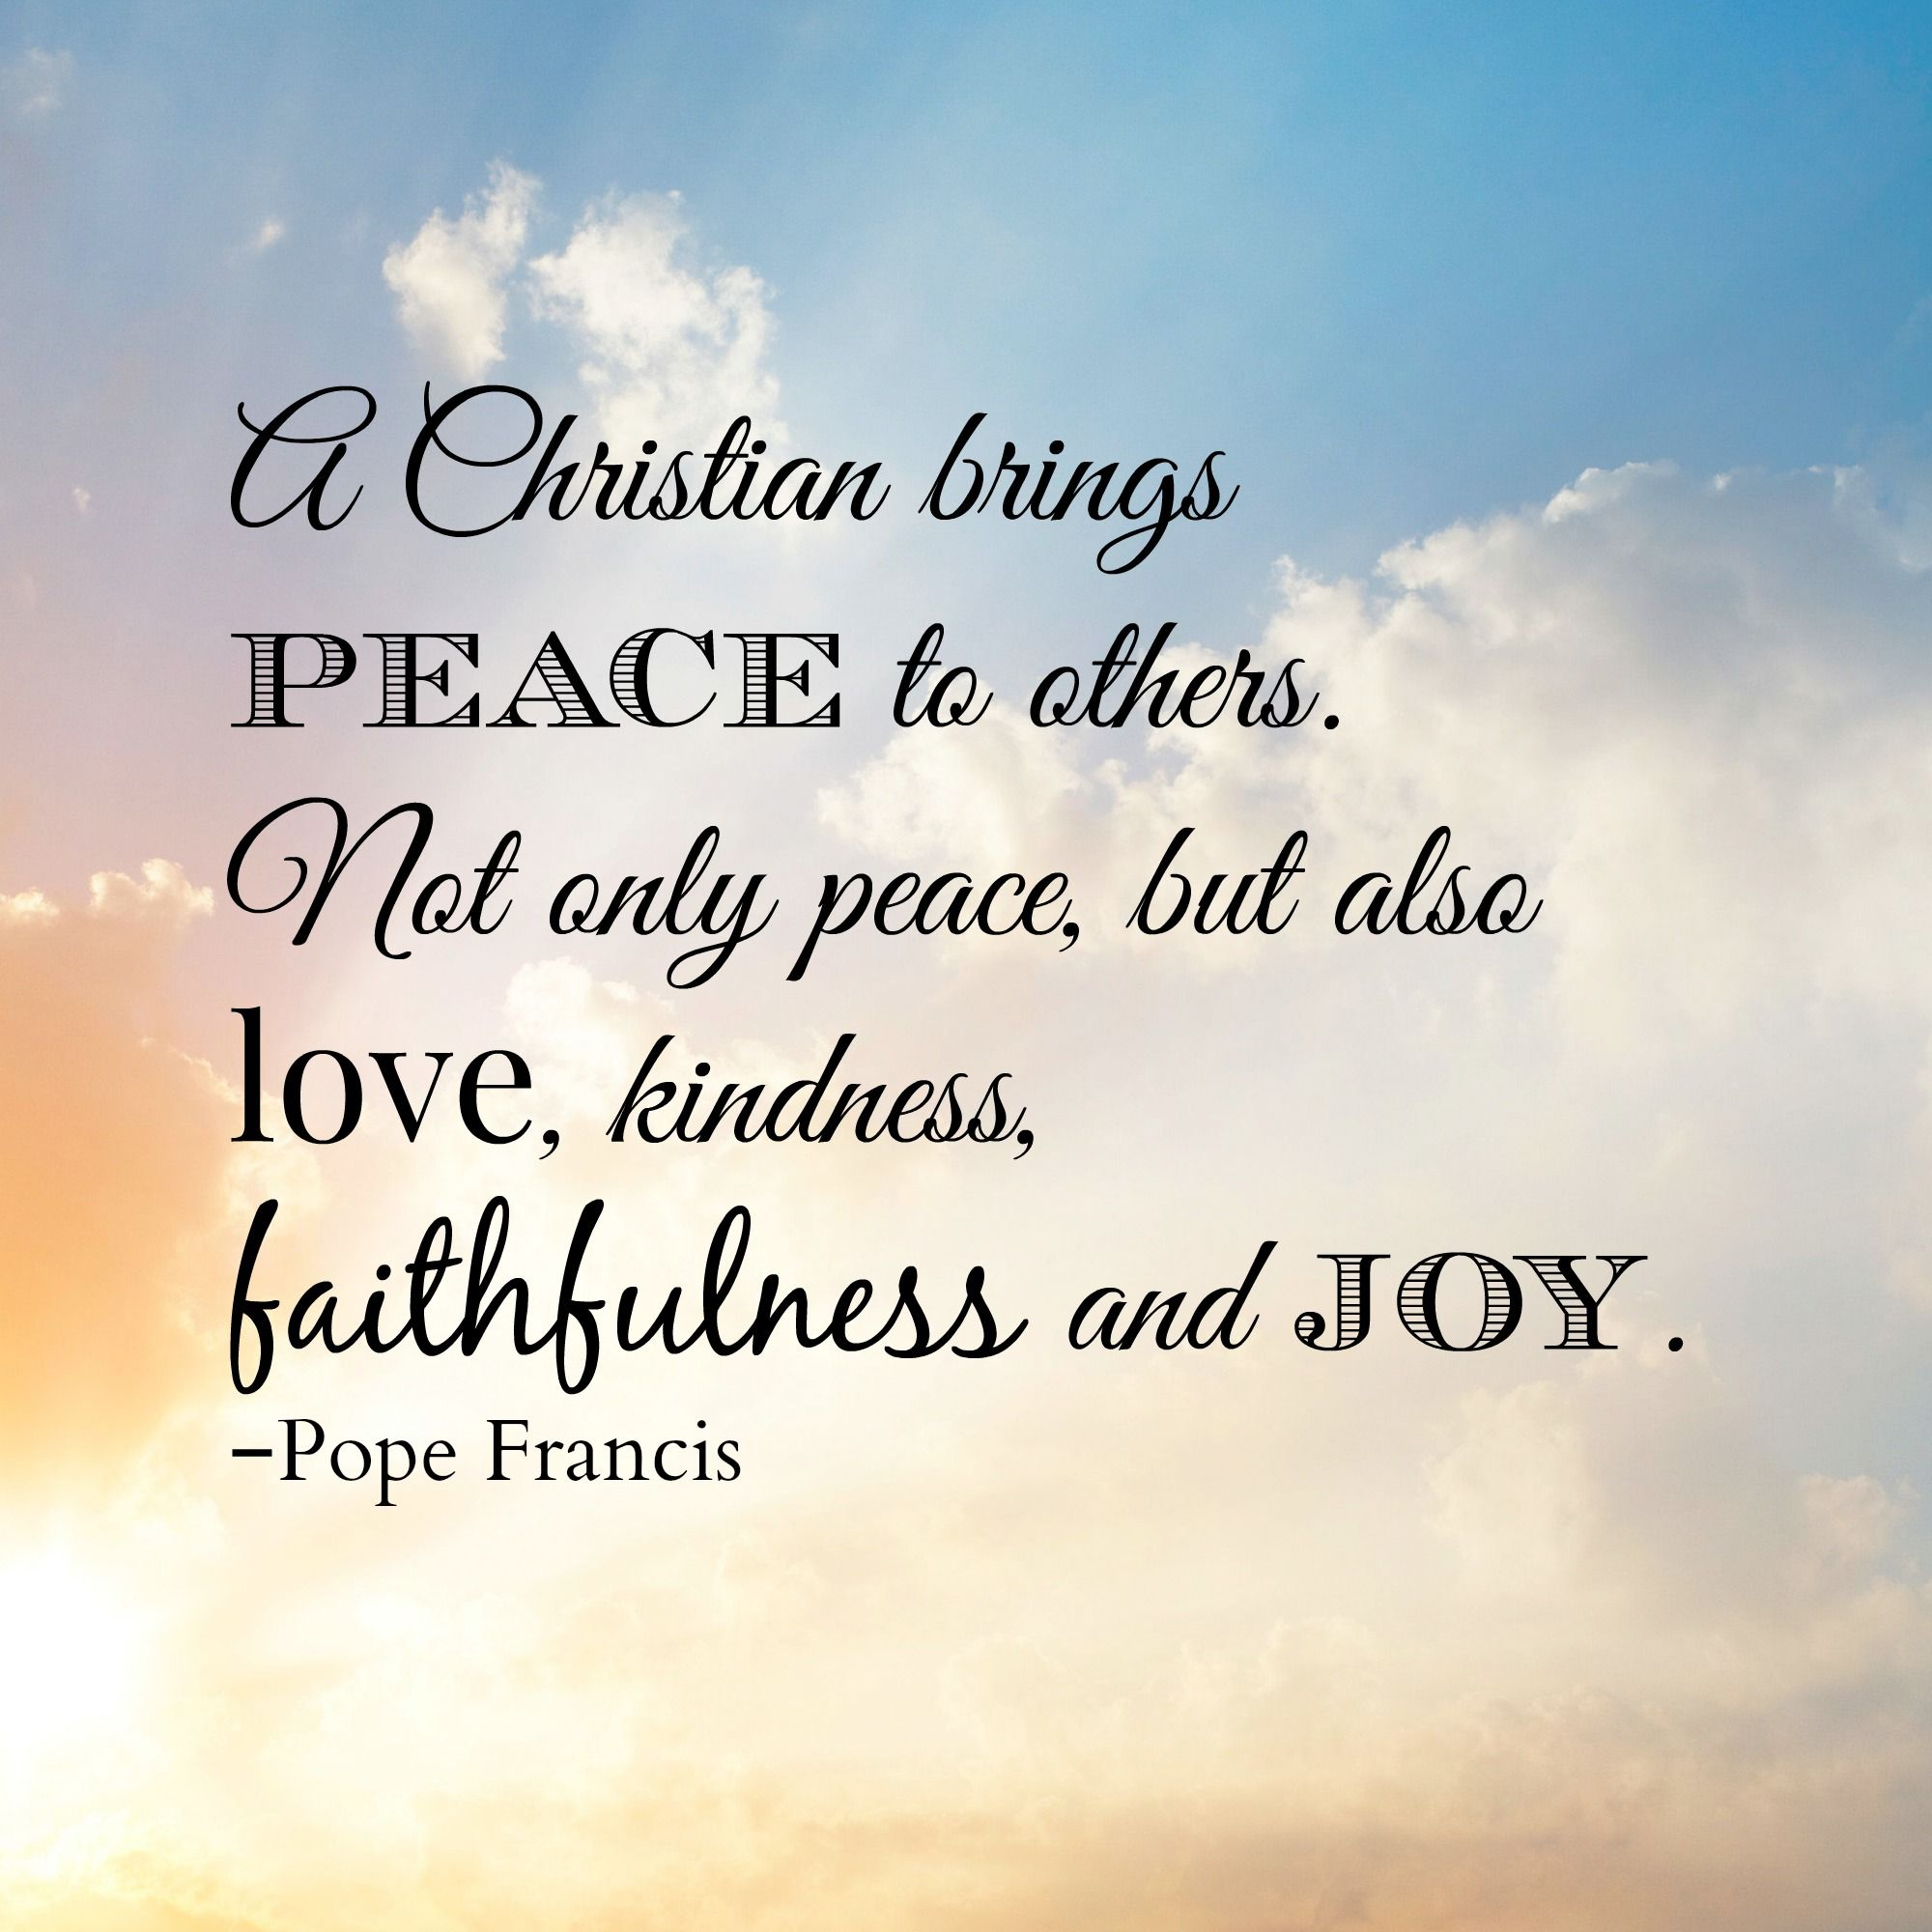 Inspirational Quotes About Peace: A Christian Brings Peace To Others... Pope Francis Quotes